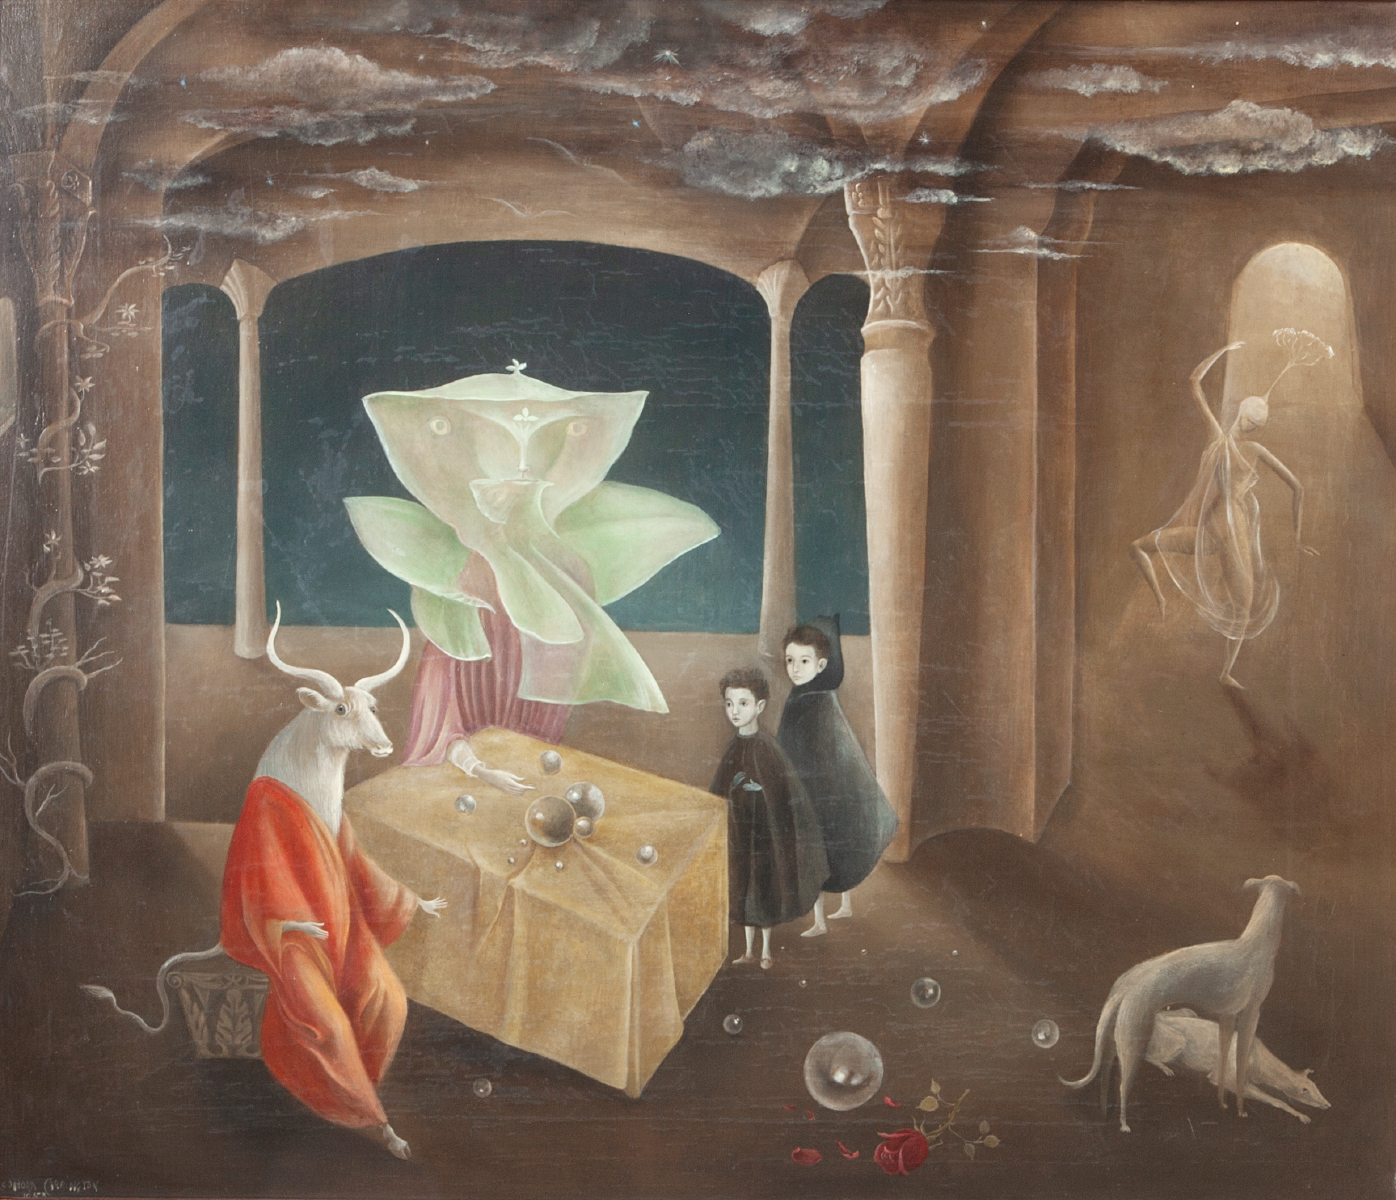 And Then We Saw the Daughter of the Minotaur! , 1953. Courtesy of Gallery Wendi Norris, San Francisco © 2019 Estate of Leonora Carrington / Artists Rights Society (ARS), New York